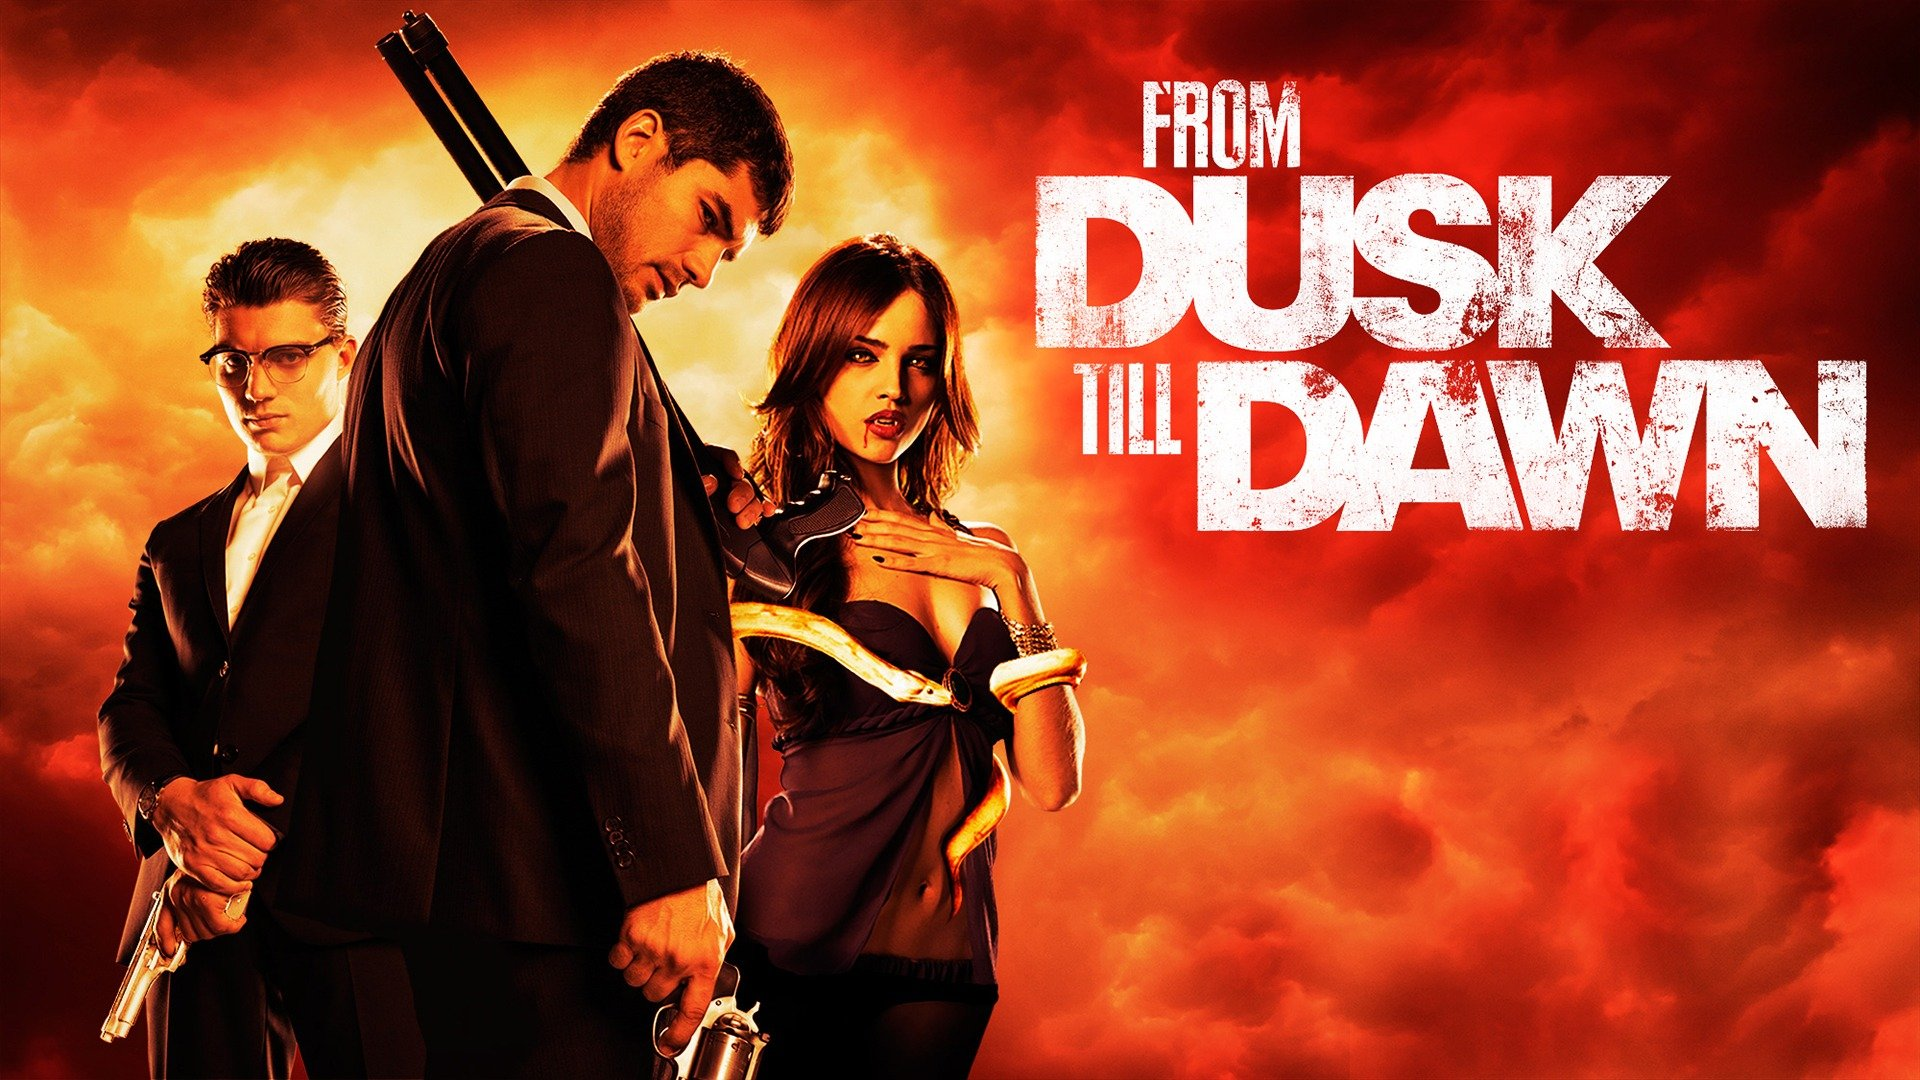 Stiahni si Seriál     Od soumraku do usvitu / From Dusk Till Dawn: The Series - 2. serie (CZ)[TvRip] = CSFD 65%